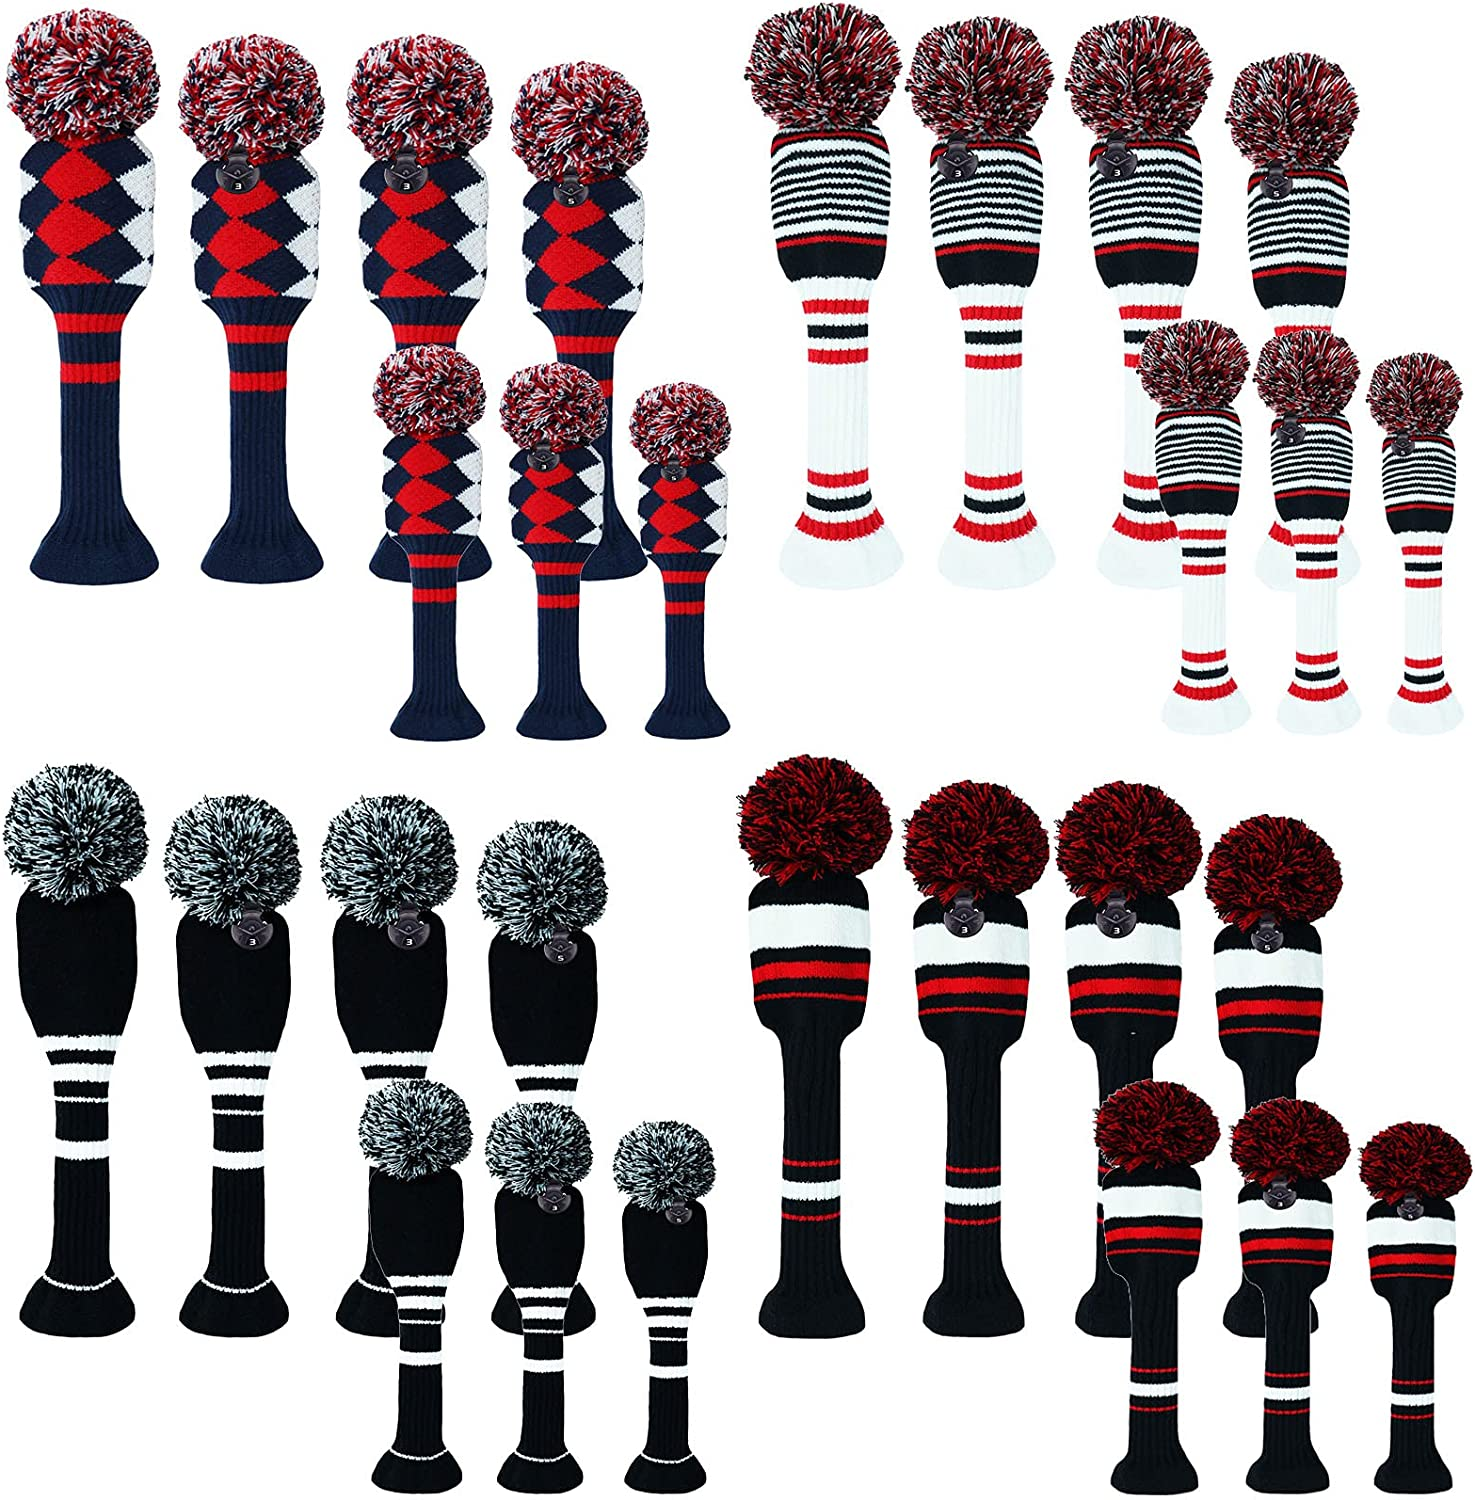 specialty shop FINGER TEN Golf Club Head Covers Driver Hy Max 84% OFF Fairway and for Woods